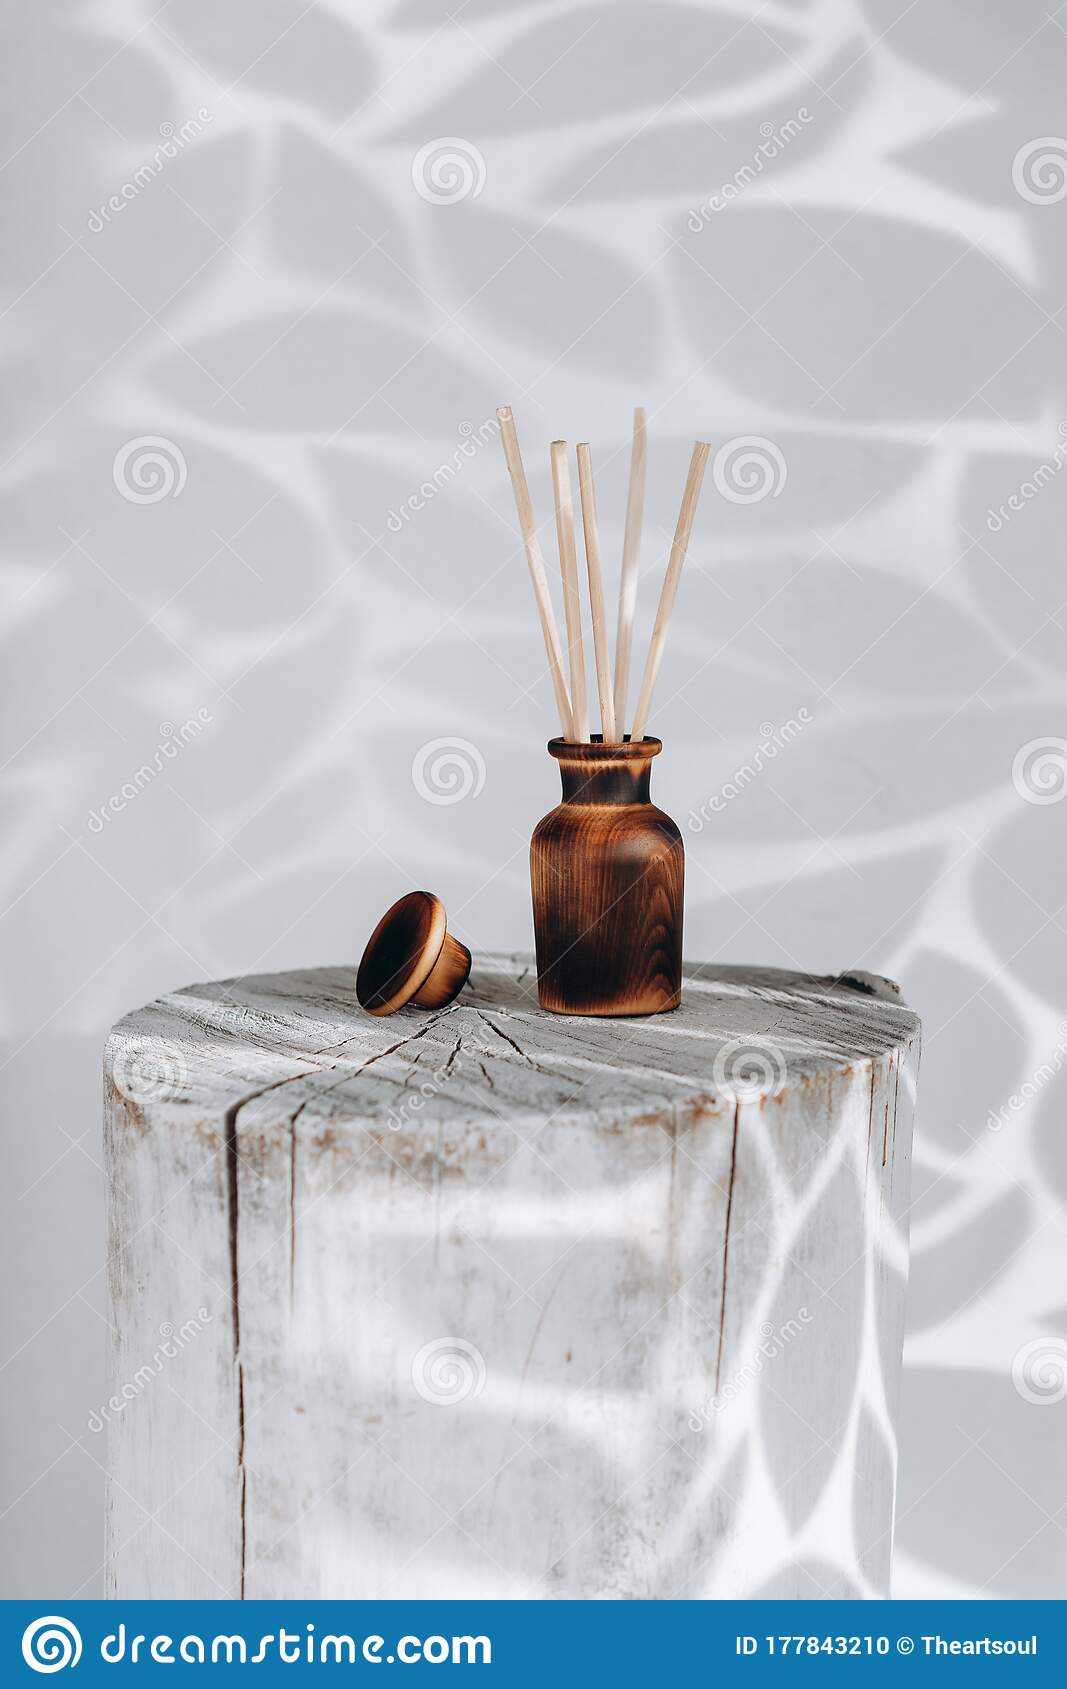 Wooden Aroma Diffuser With Sticks On A Hemp On A White Background Stock Photo Image Of Care Decoration 177843210